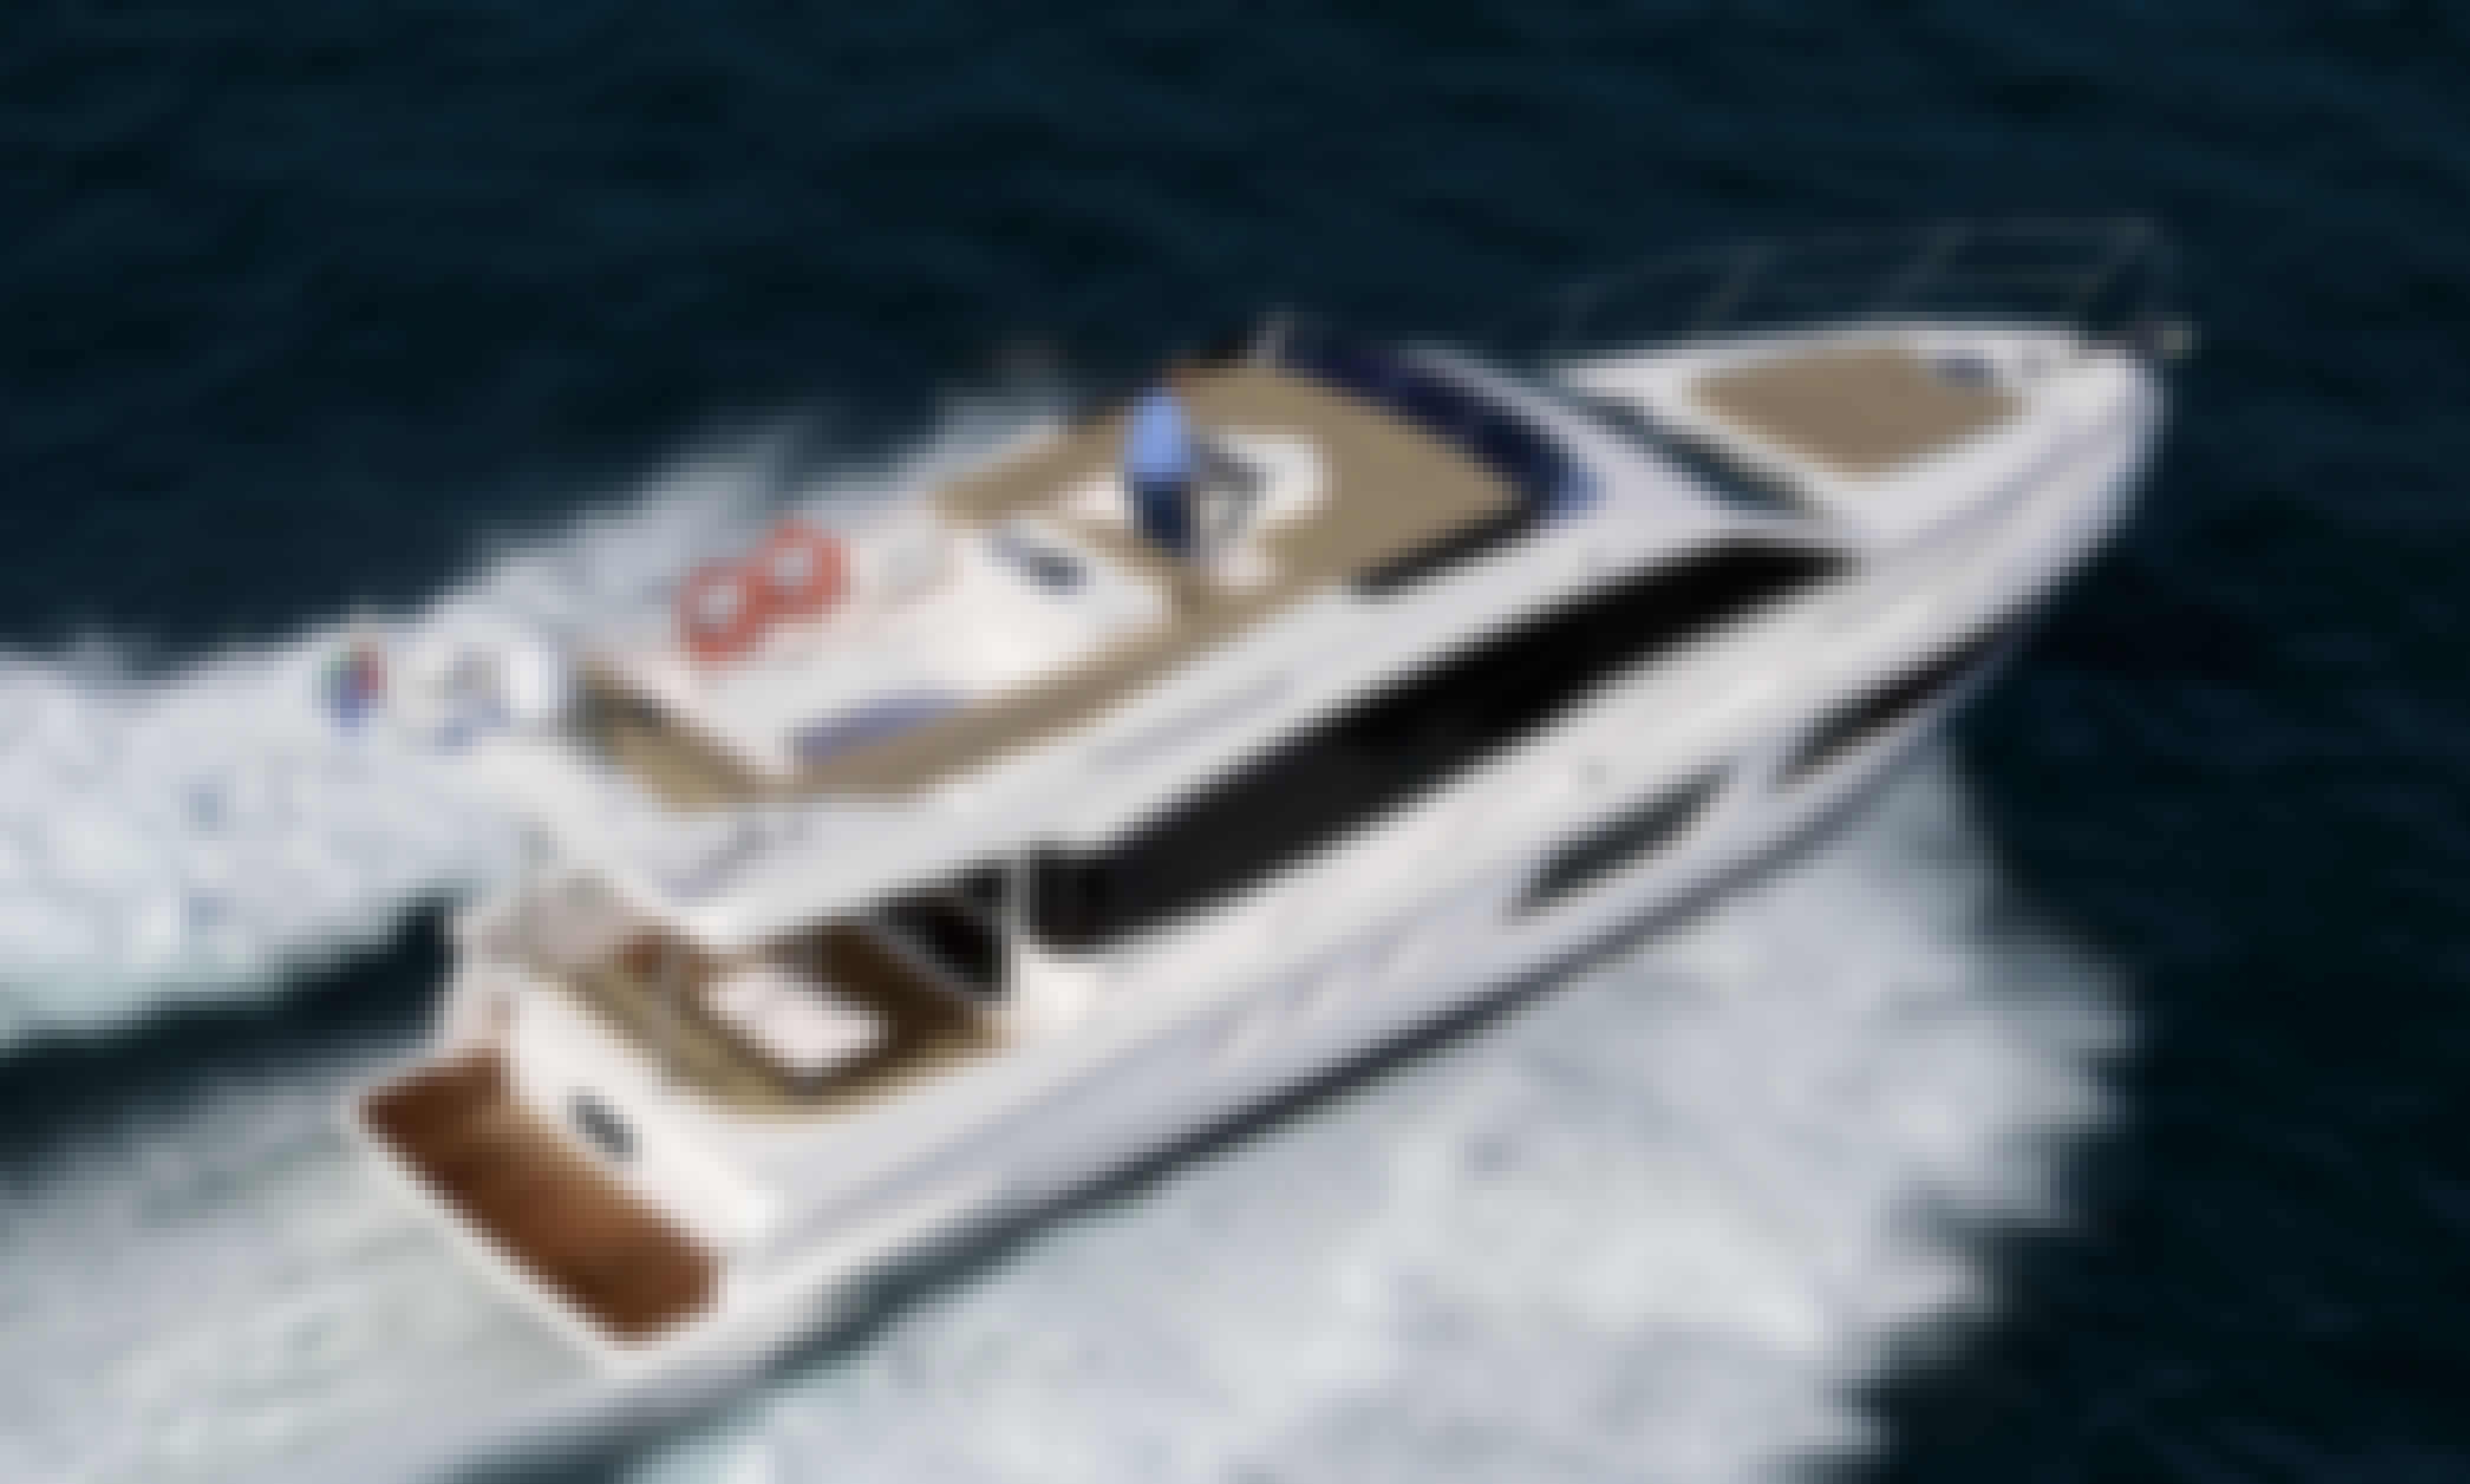 Charter this 48 ft Majesty Motor Yacht with 320 HP Engine in Dubai